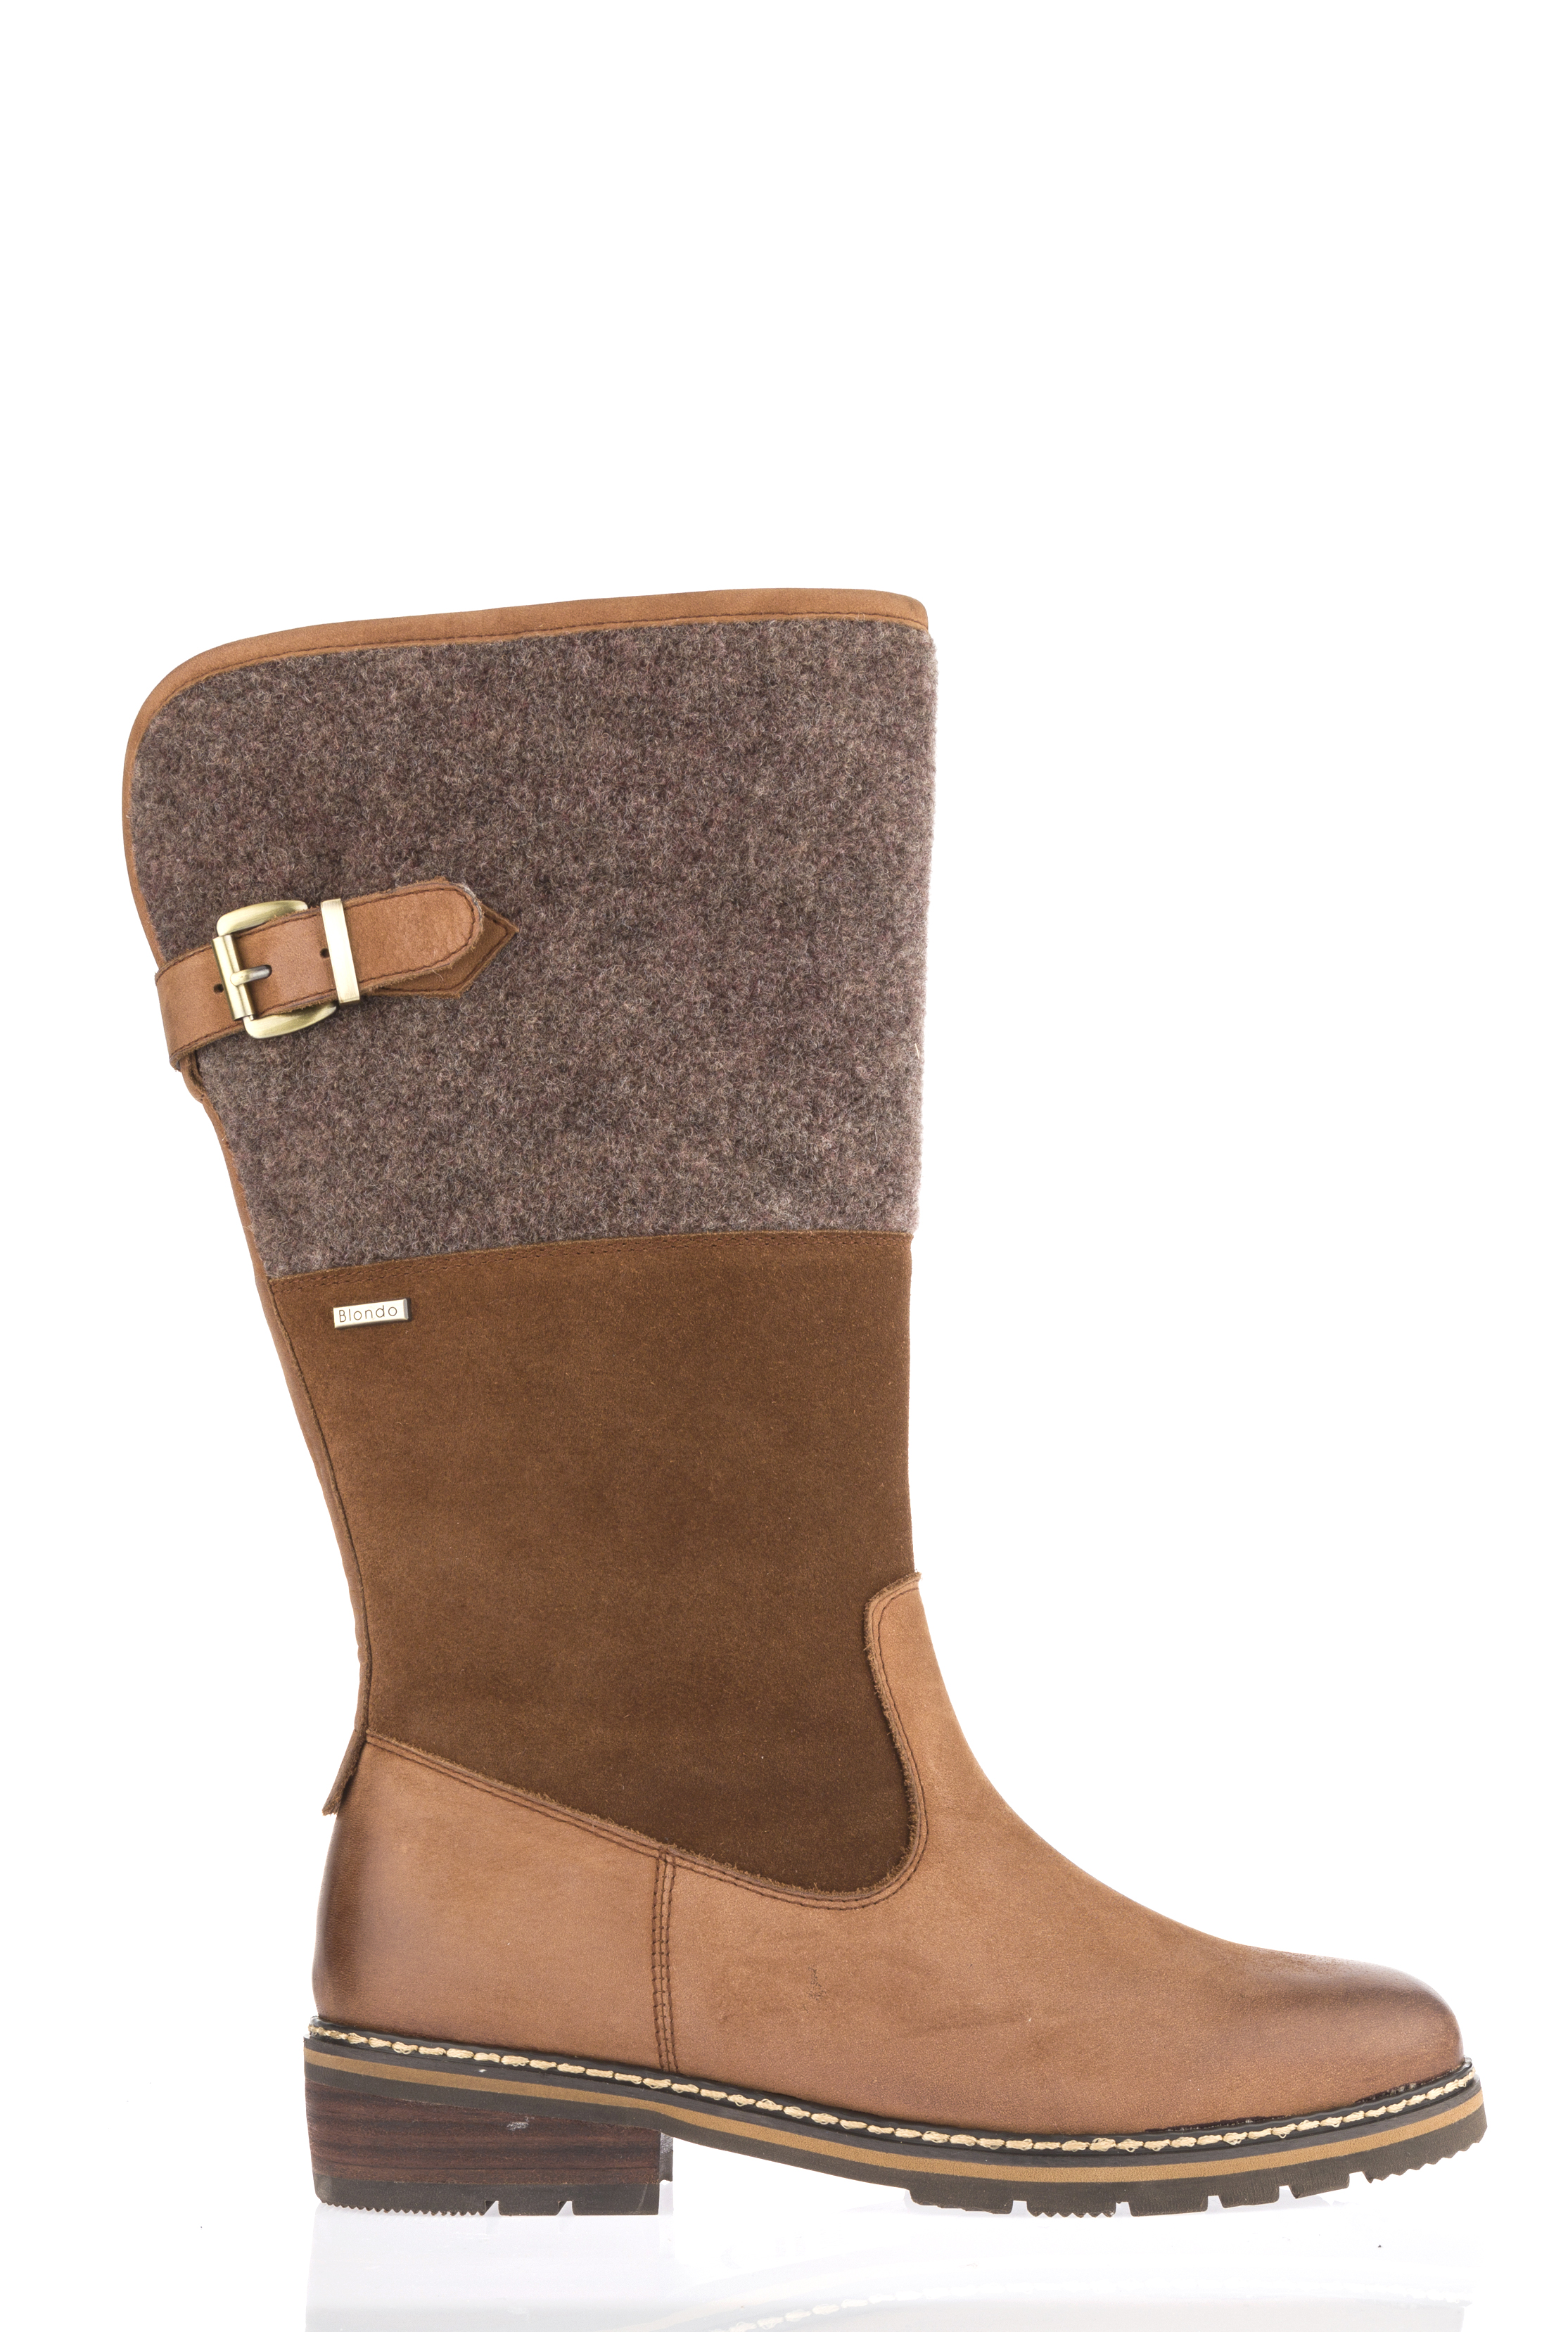 Tan Blondo Venus Winter Boot